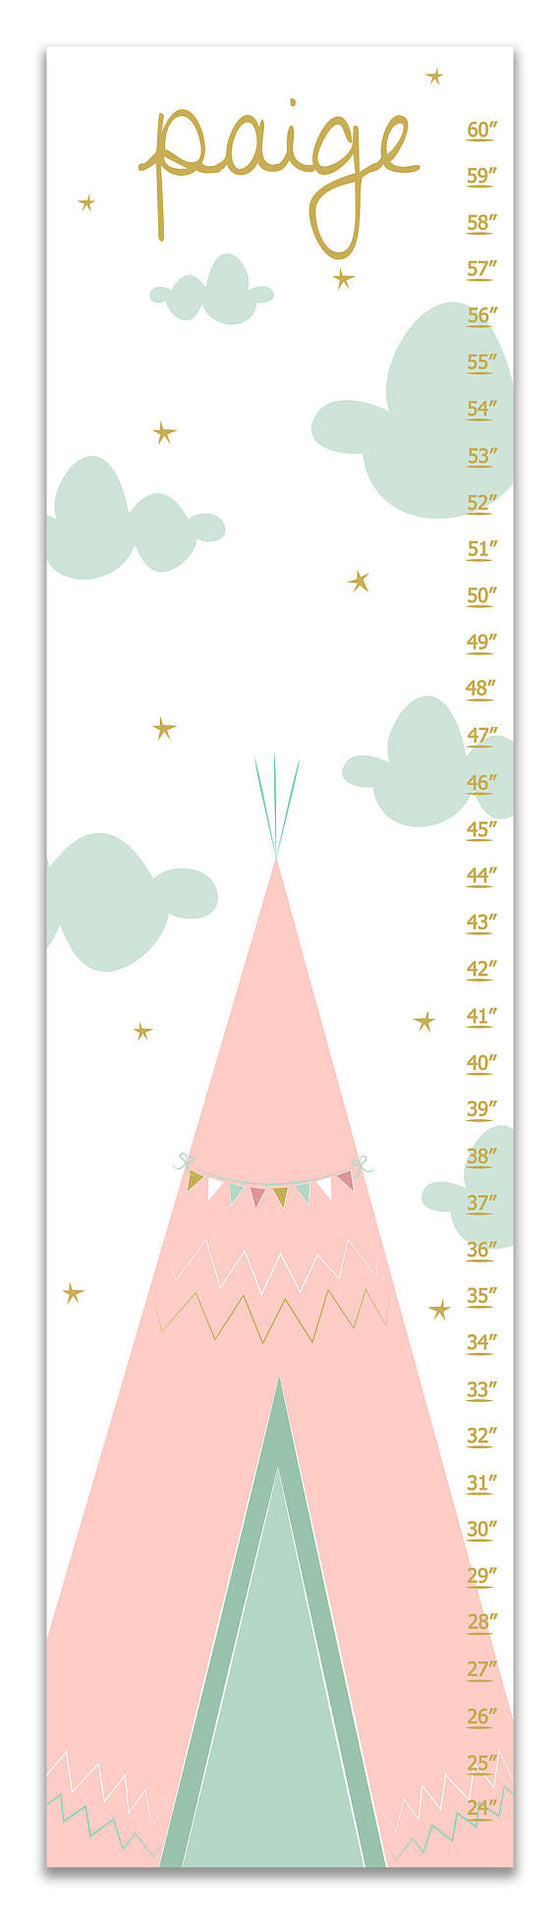 Teepee Personalized Growth Chart - Pink & Mint - Nursery Decor